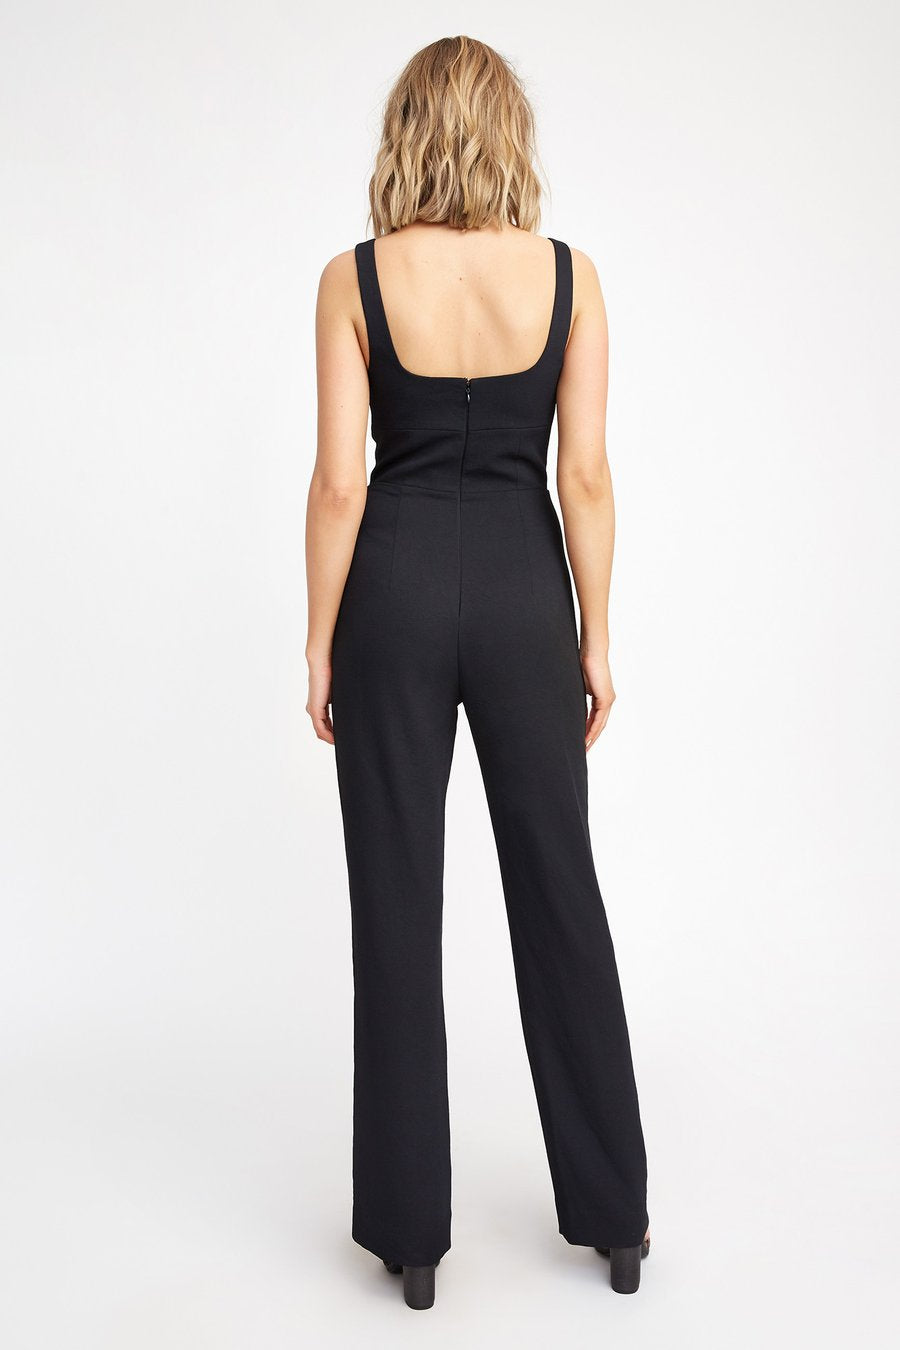 Macey Jumpsuit in Black - Kookaï